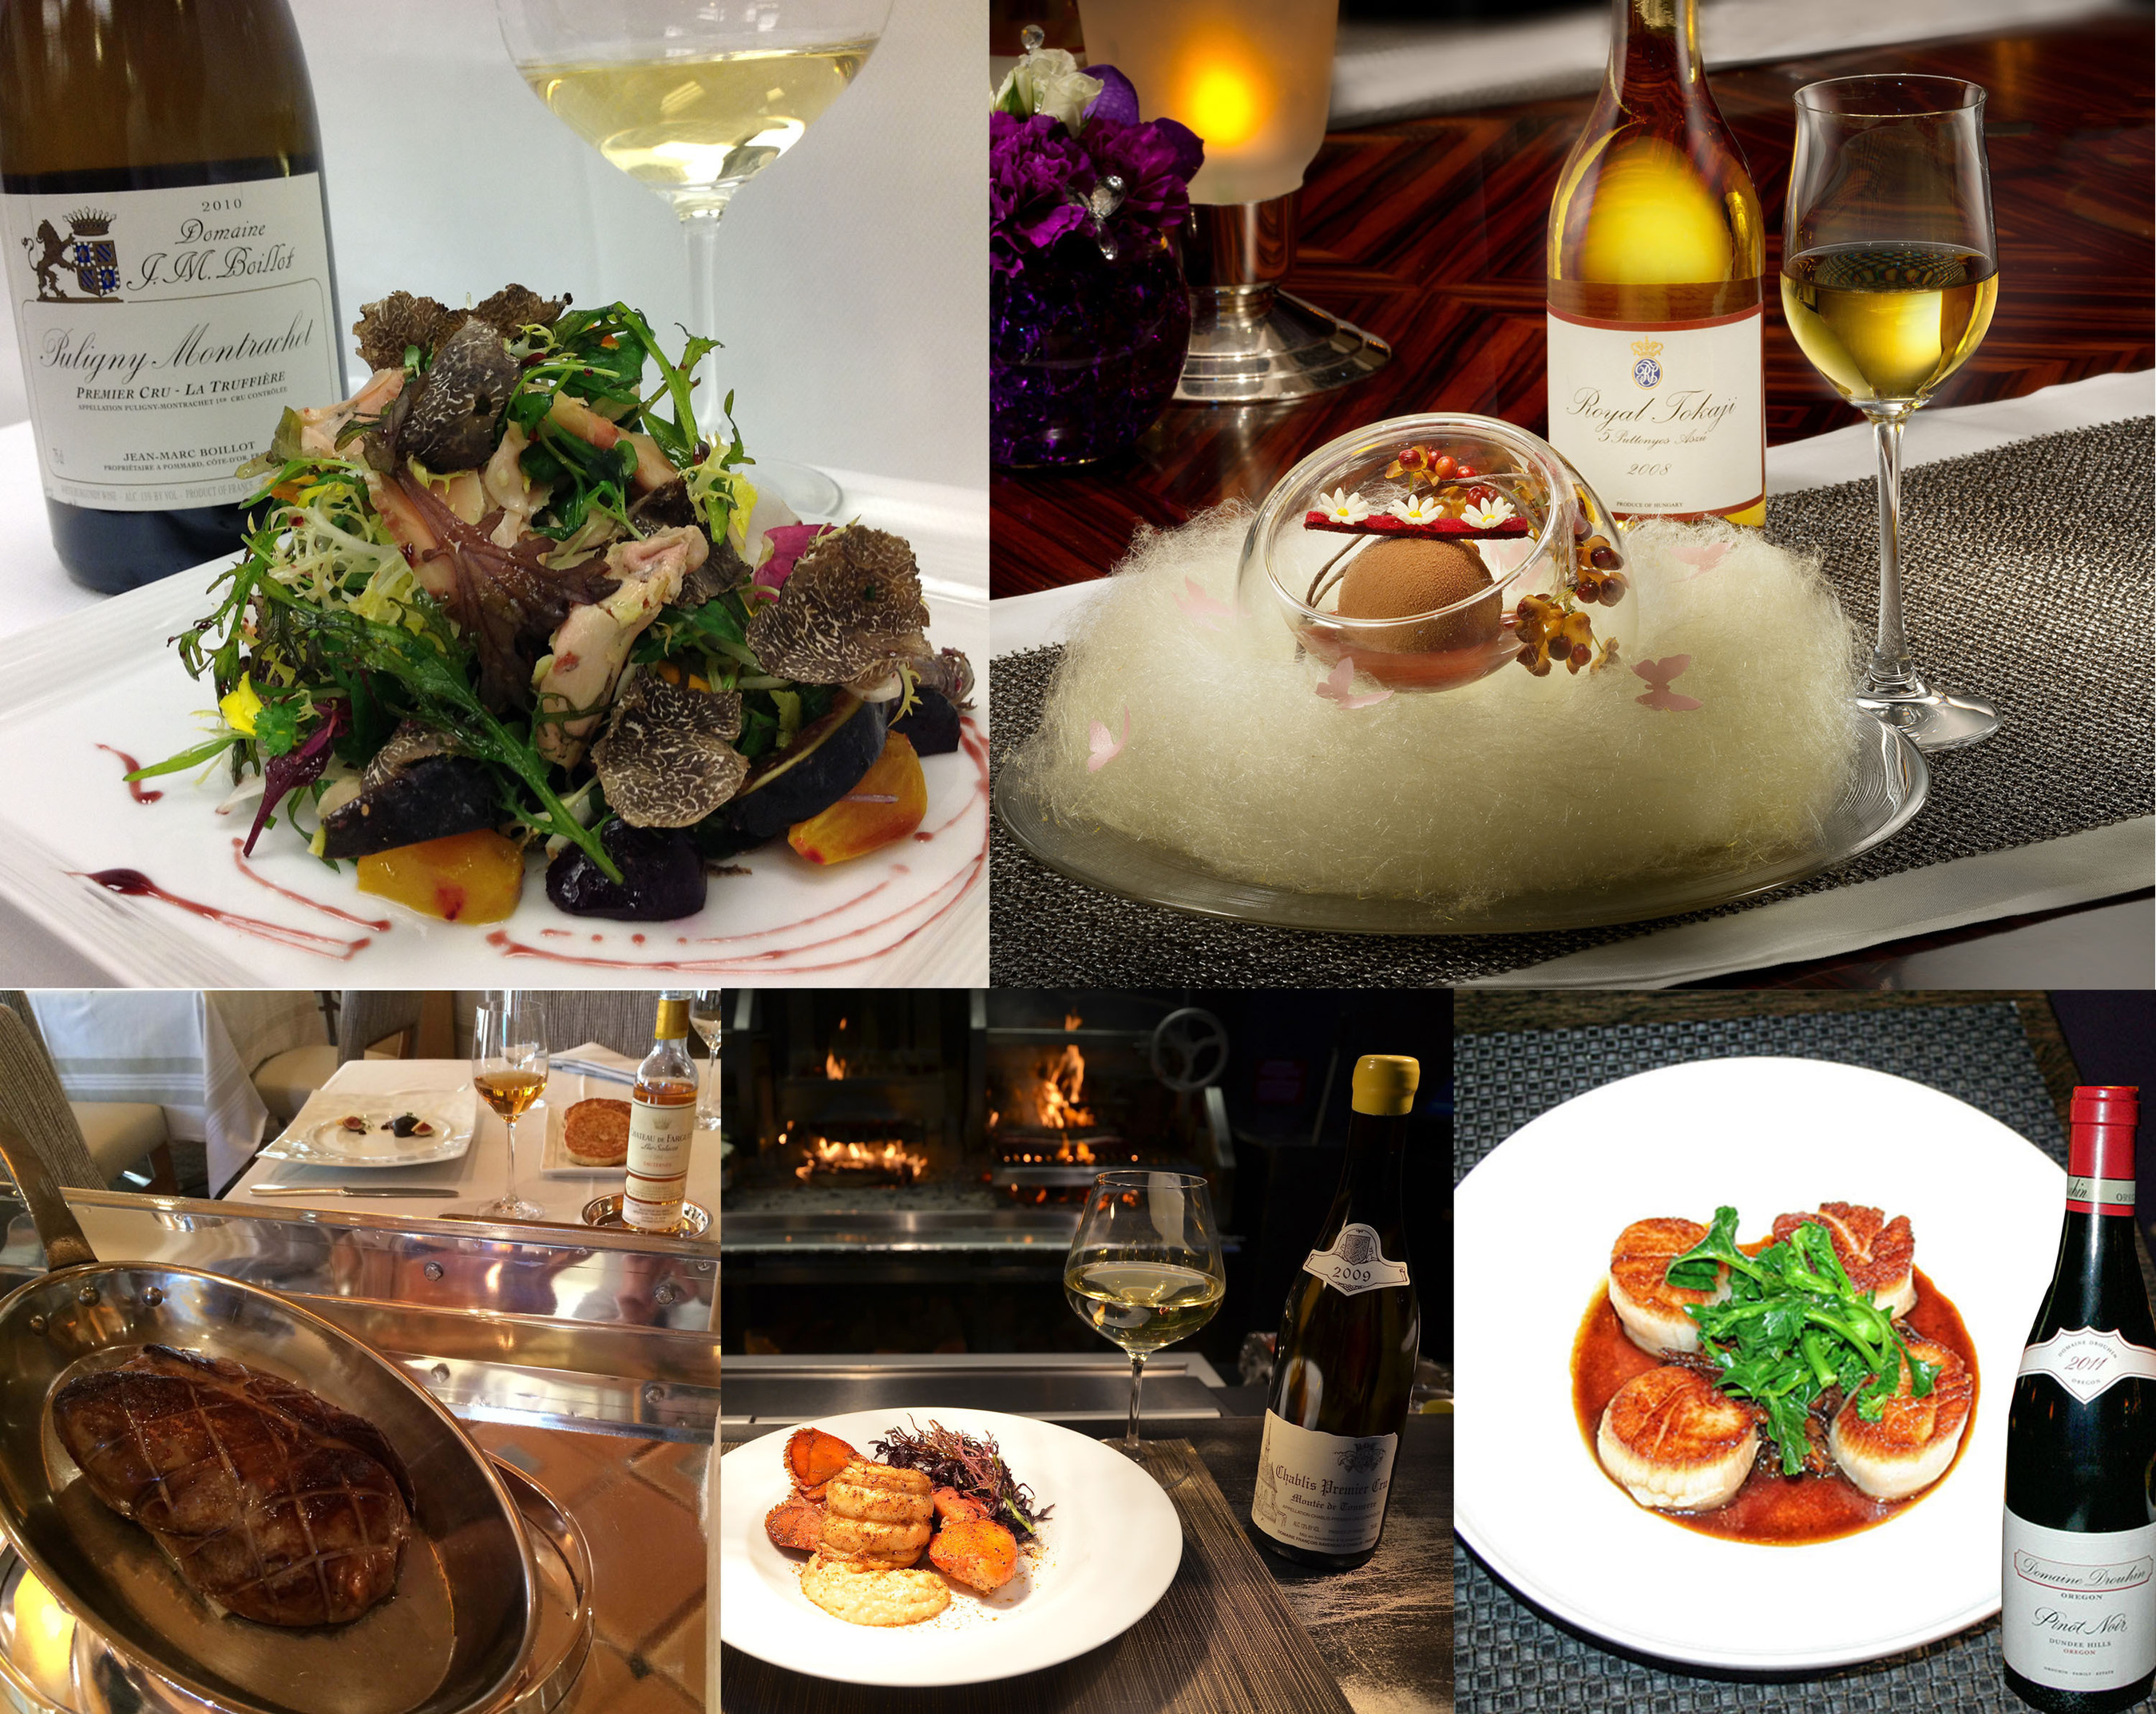 Romantic food and wine pairings (http://bit.ly/1g7LONM) recommended by Las Vegas' talented sommeliers, perfect for Valentine's Day.  (PRNewsFoto/MGM Resorts International)